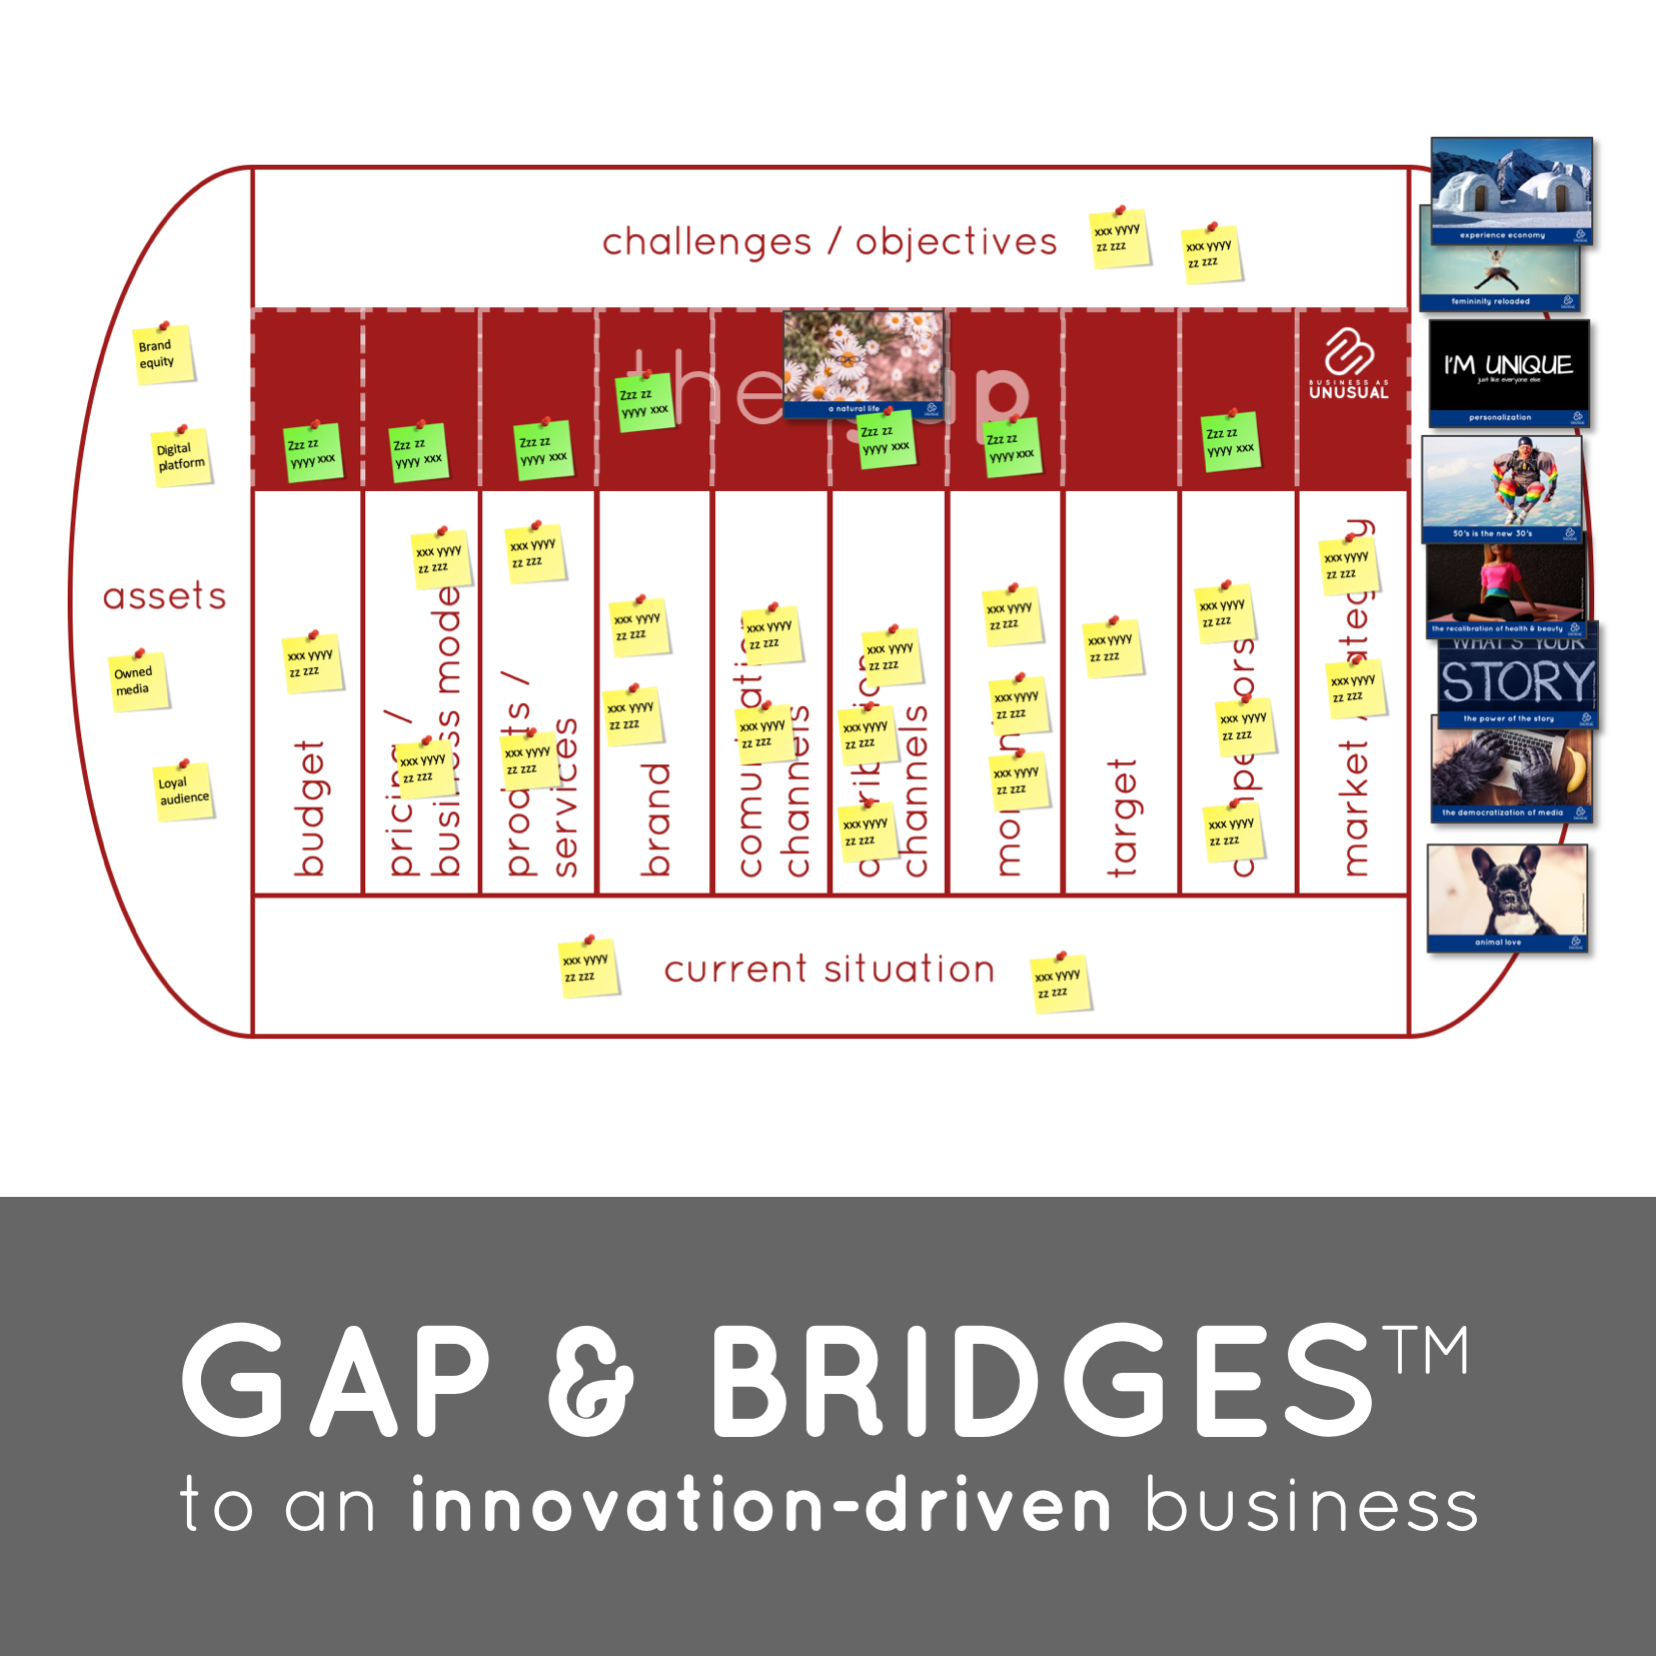 Unusual Games - Gap & Bridges - For Innovation-Driven Business, Strategies & Marketing Plans